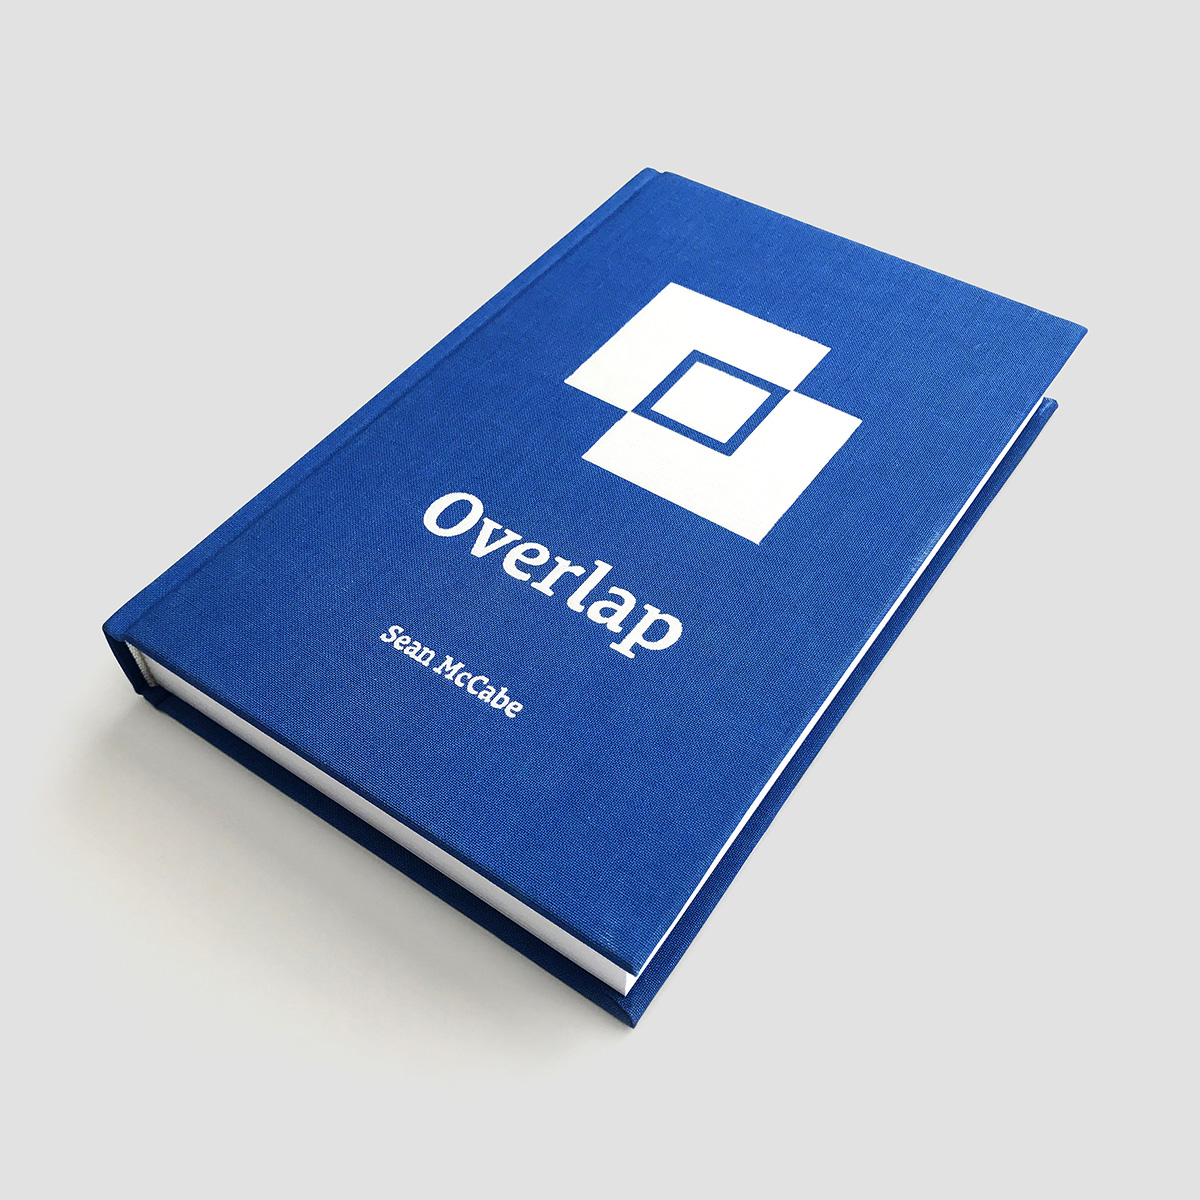 Overlap Book - Sean McCabe